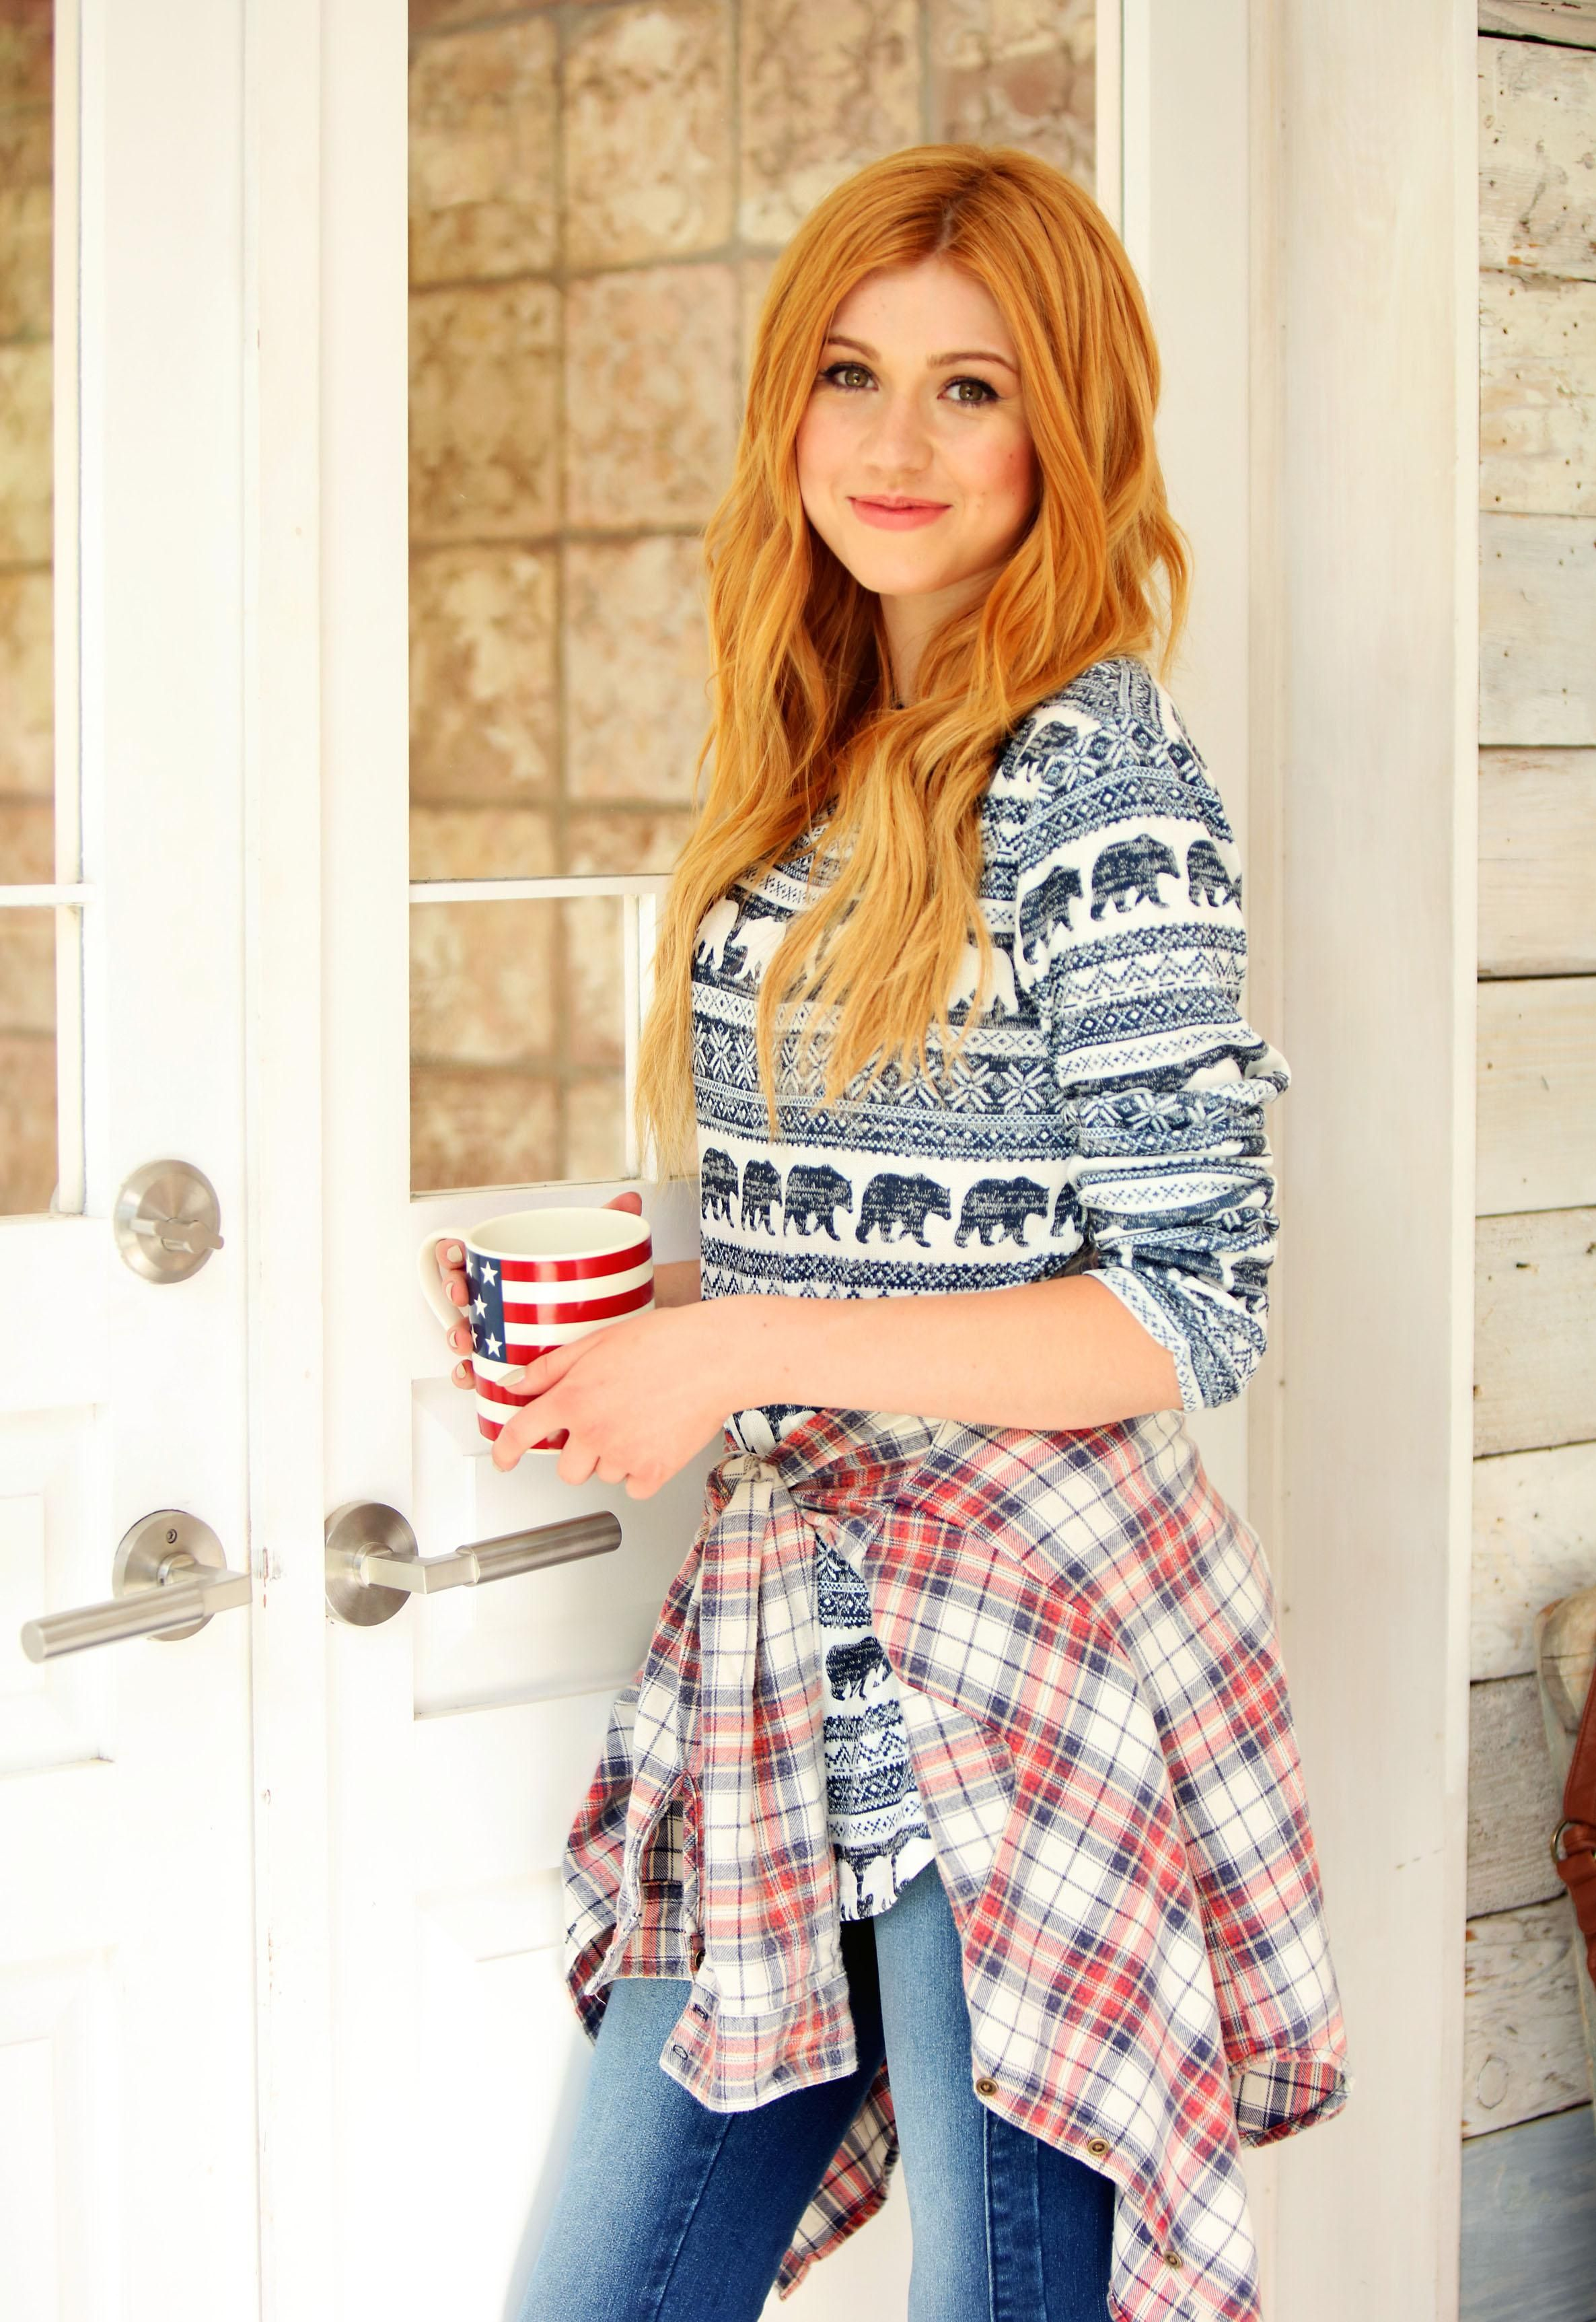 """((Open w/ Jilli, Player)) Jilli stood outside, quietly drinking her hot chocolate as she watched people walk past. It was a quiet day. For the time being. But knowing herself, things wouldn't stay calm in the least. She watched her day begin to change when Y/C walked up. """"Hello,"""" she smiled."""